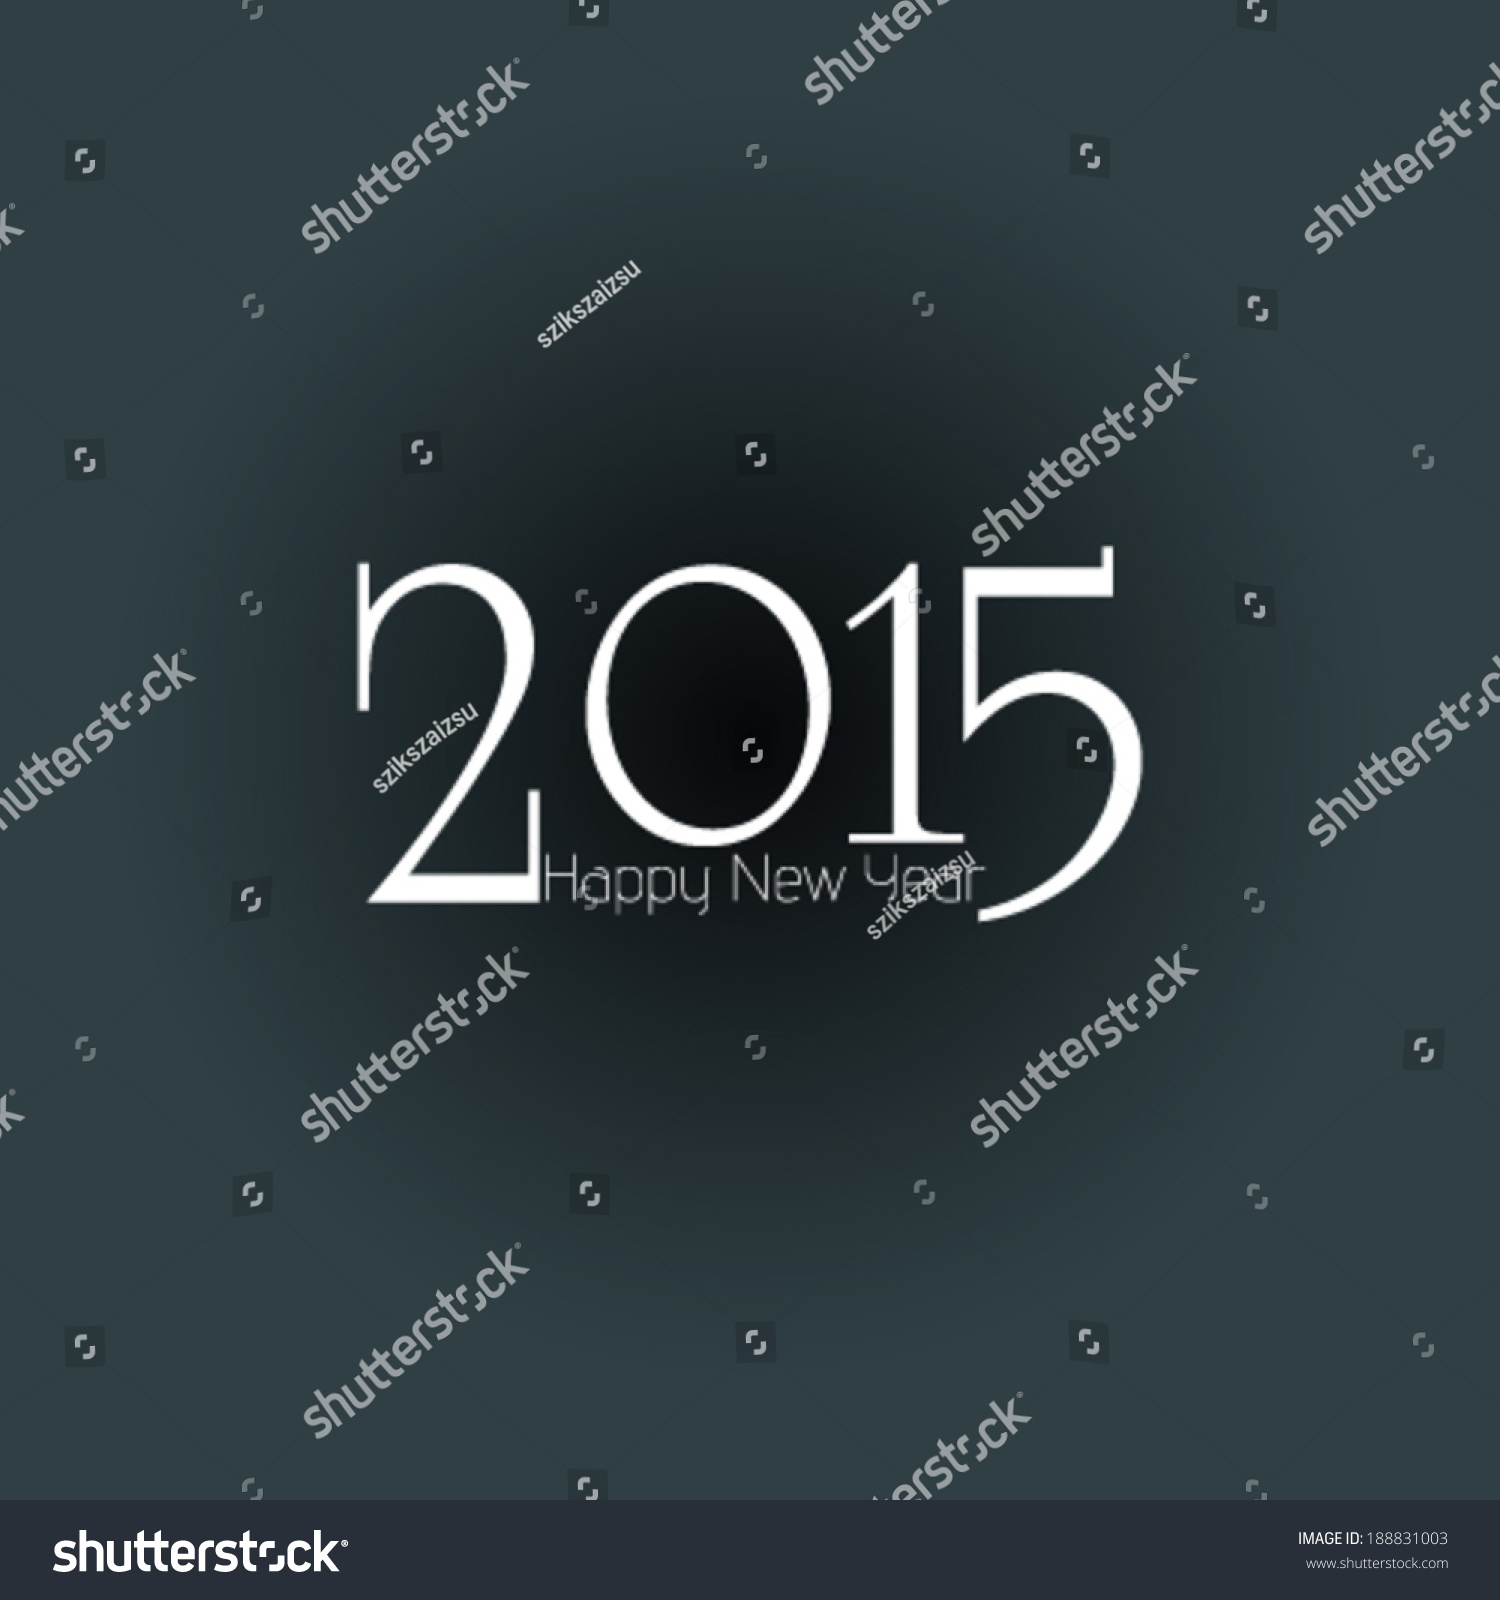 Happy New Year 2015 Greeting Card Design Ez Canvas